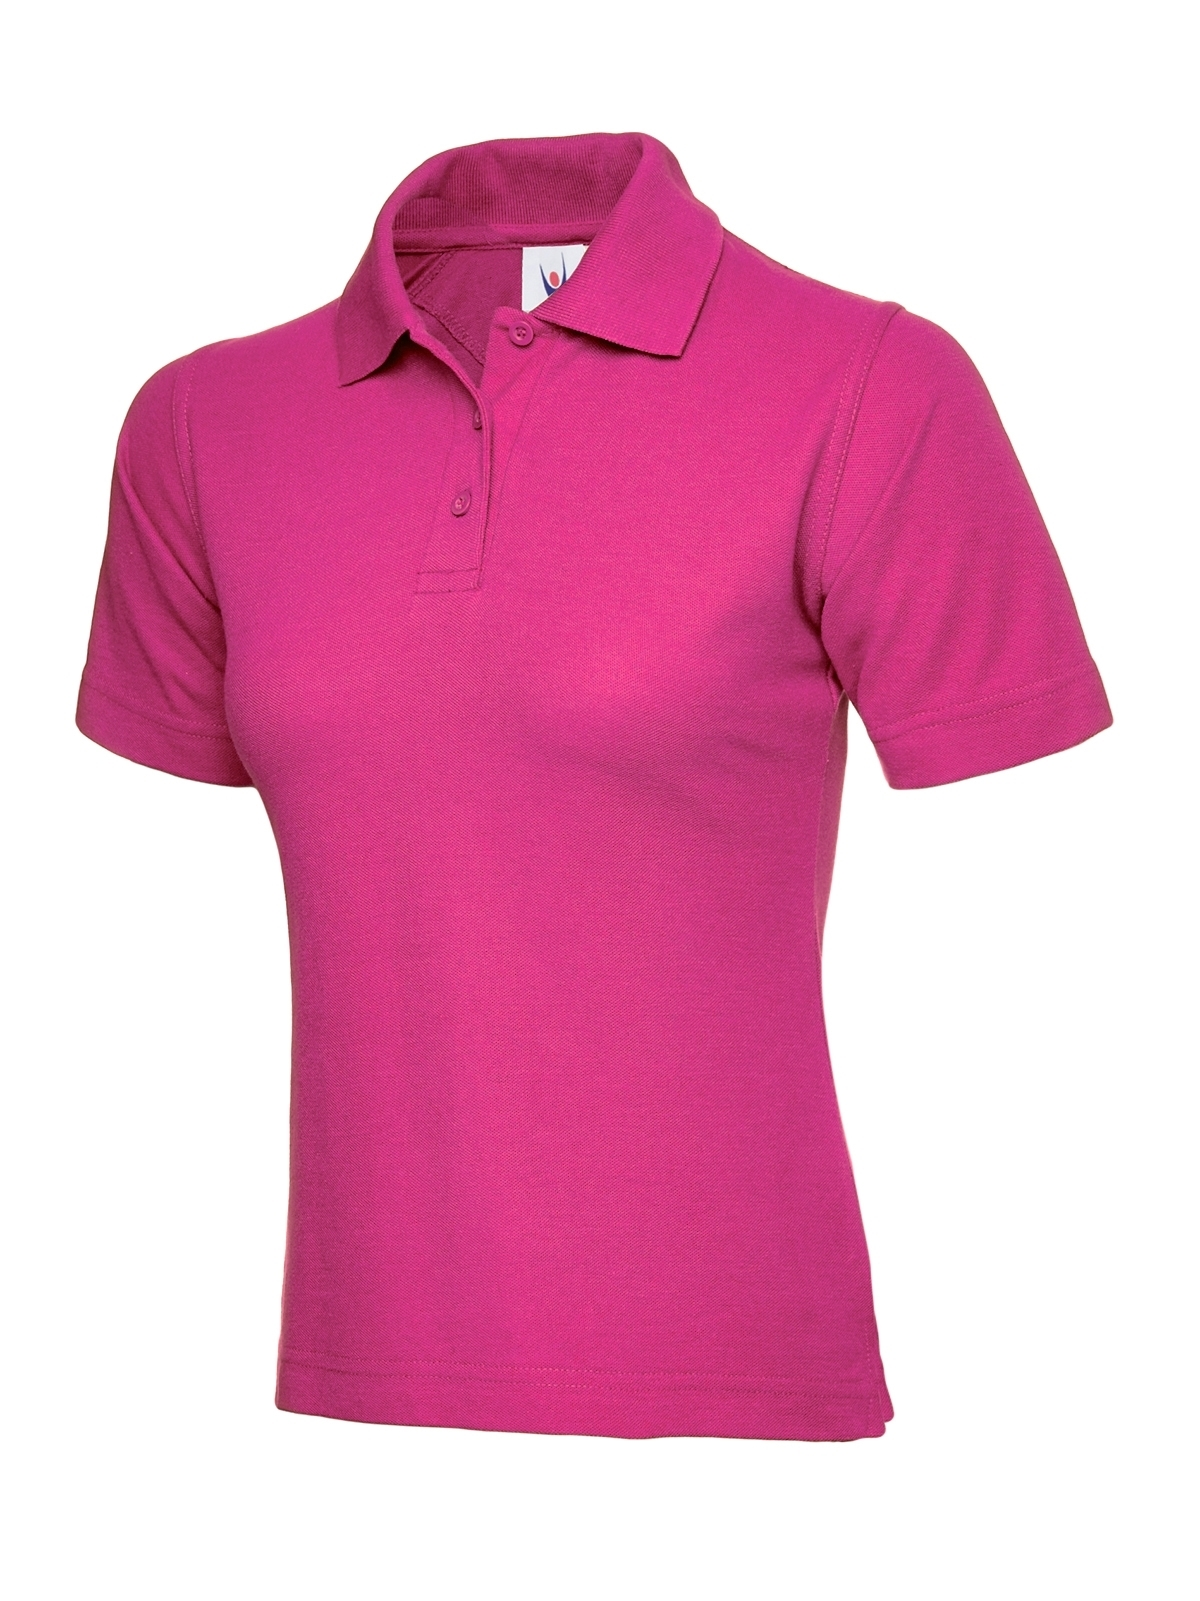 Picture of Female Polo Shirt - Pink